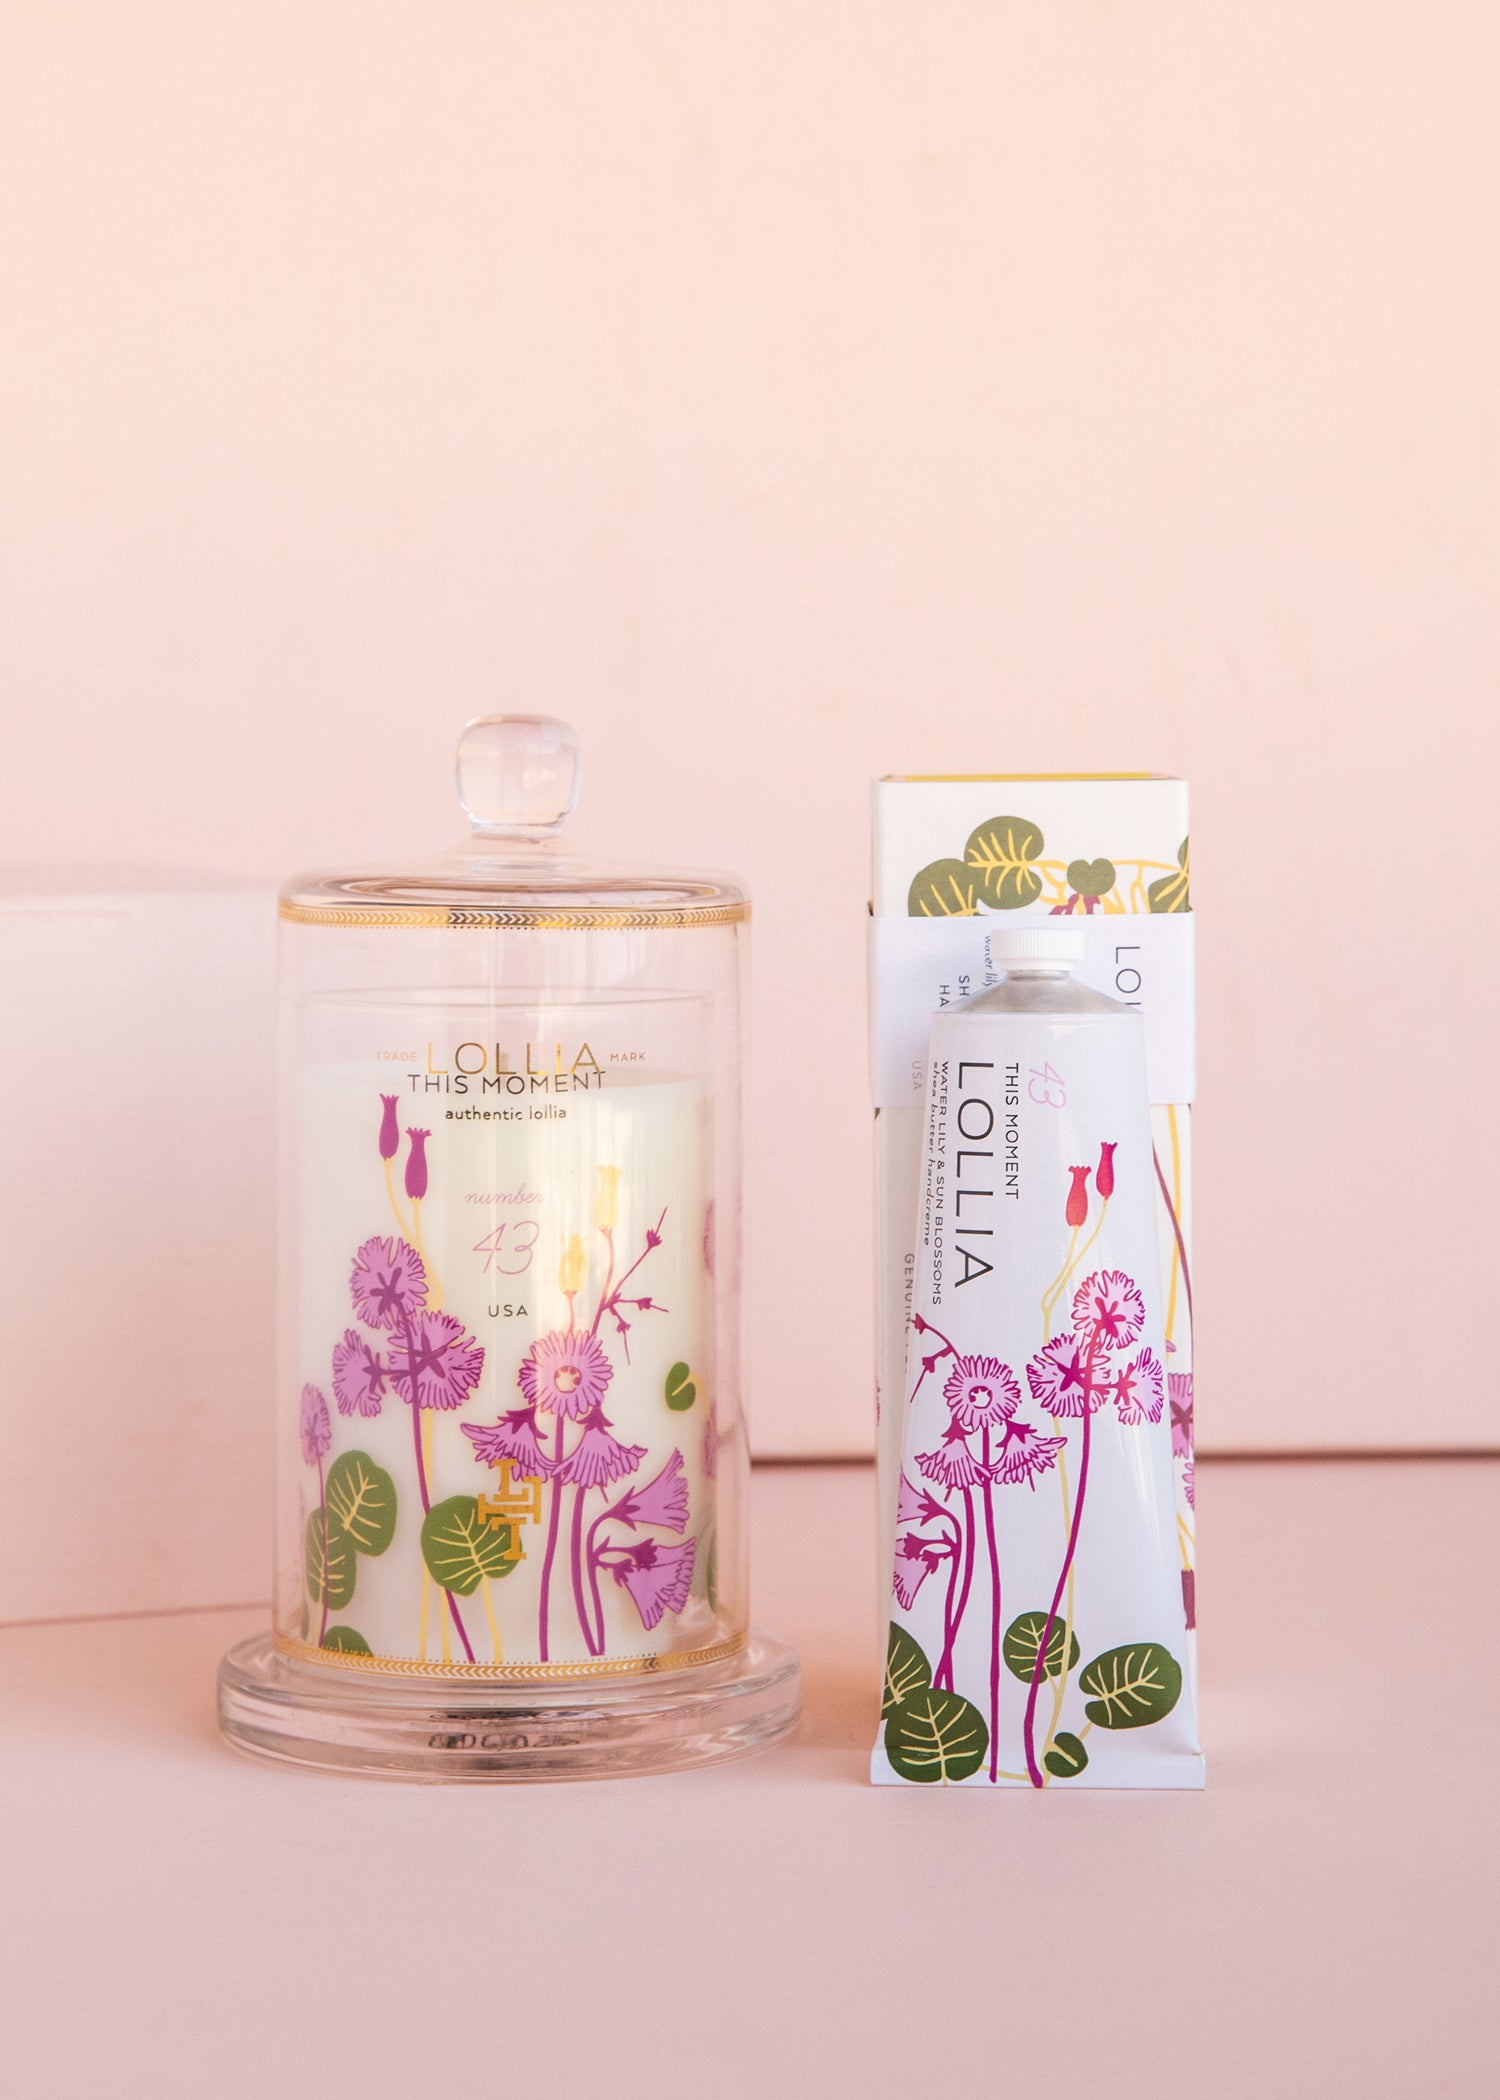 This Moment Candle & Handcreme Duo